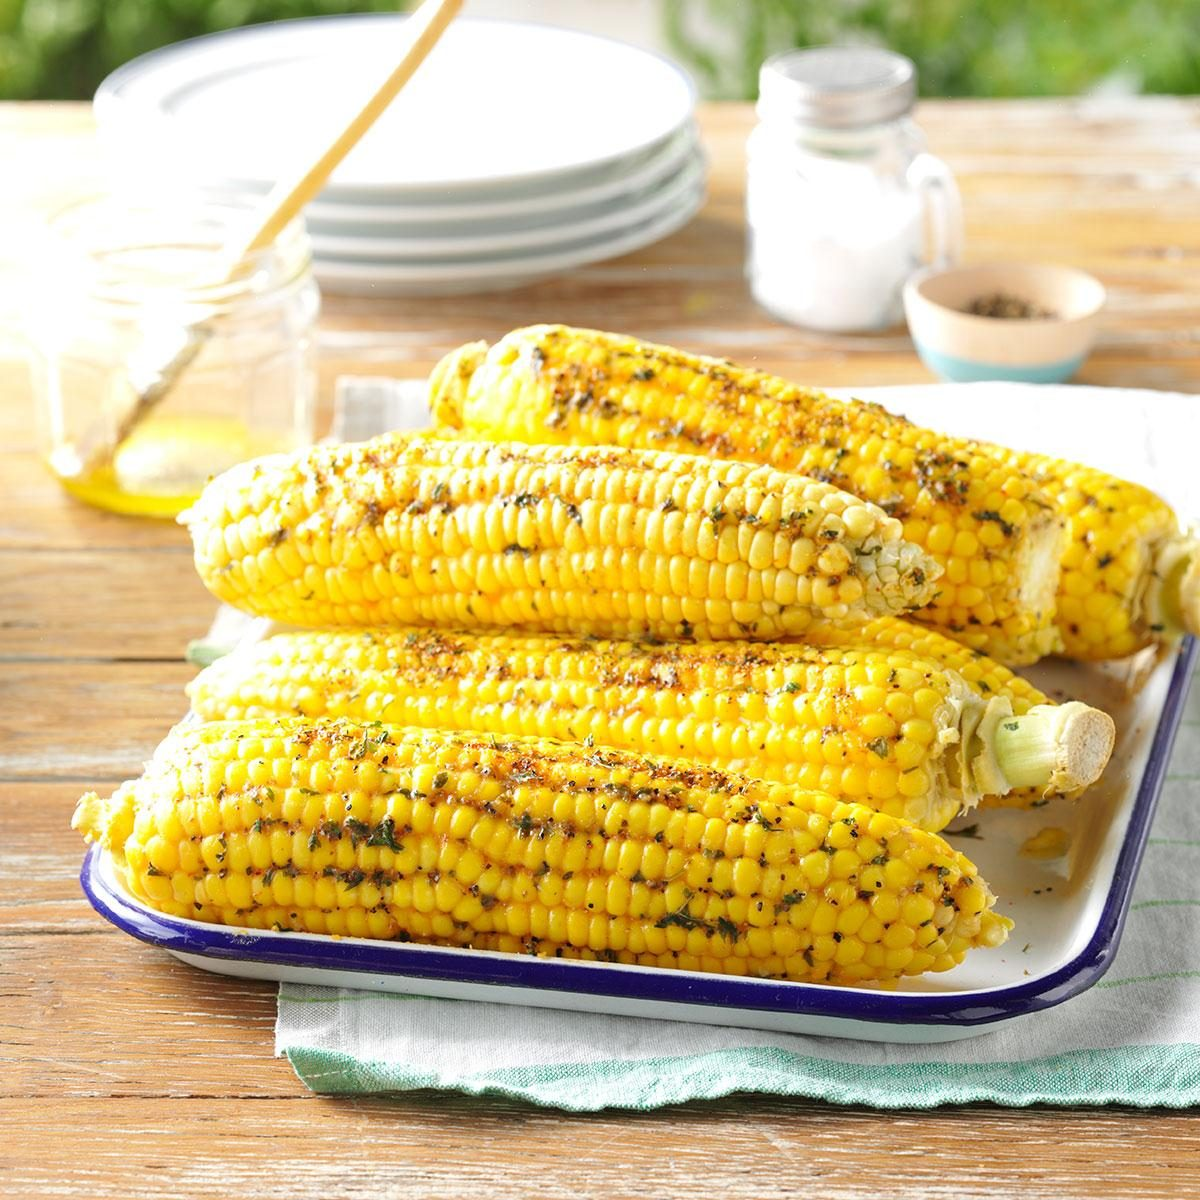 How to Boil Corn